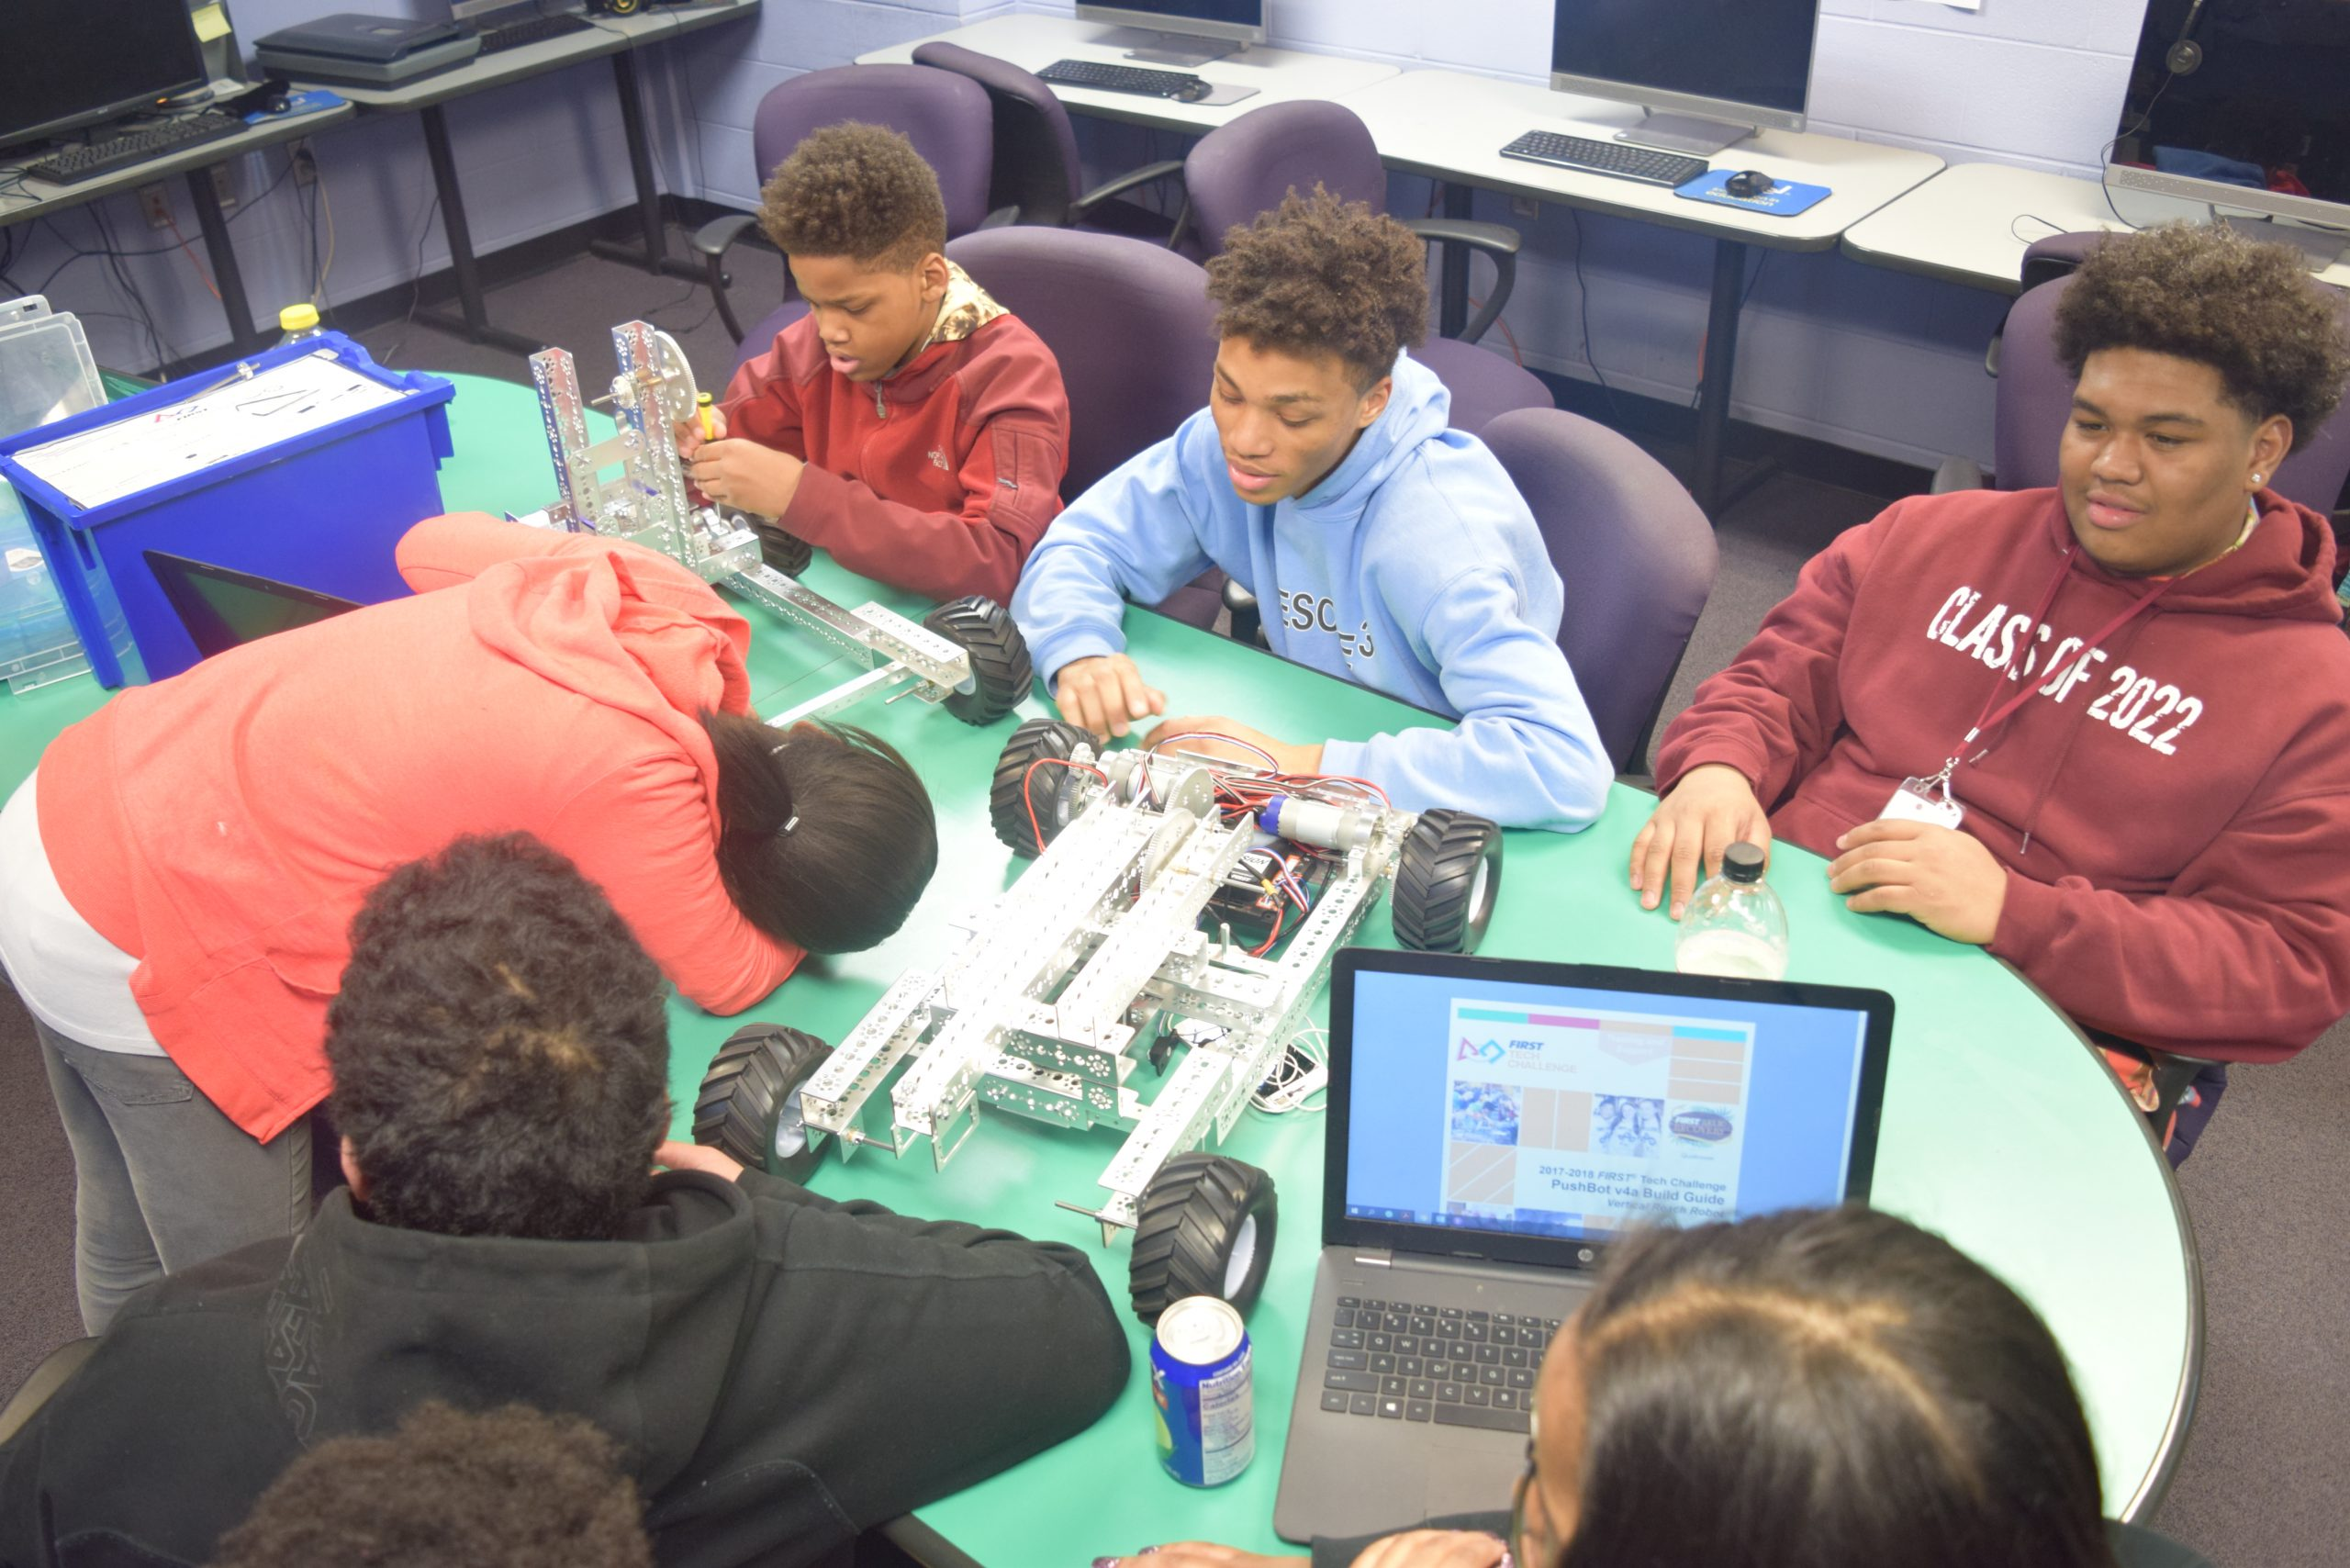 a group of youth work on a robotics project at a green table | Northwest Activities Center